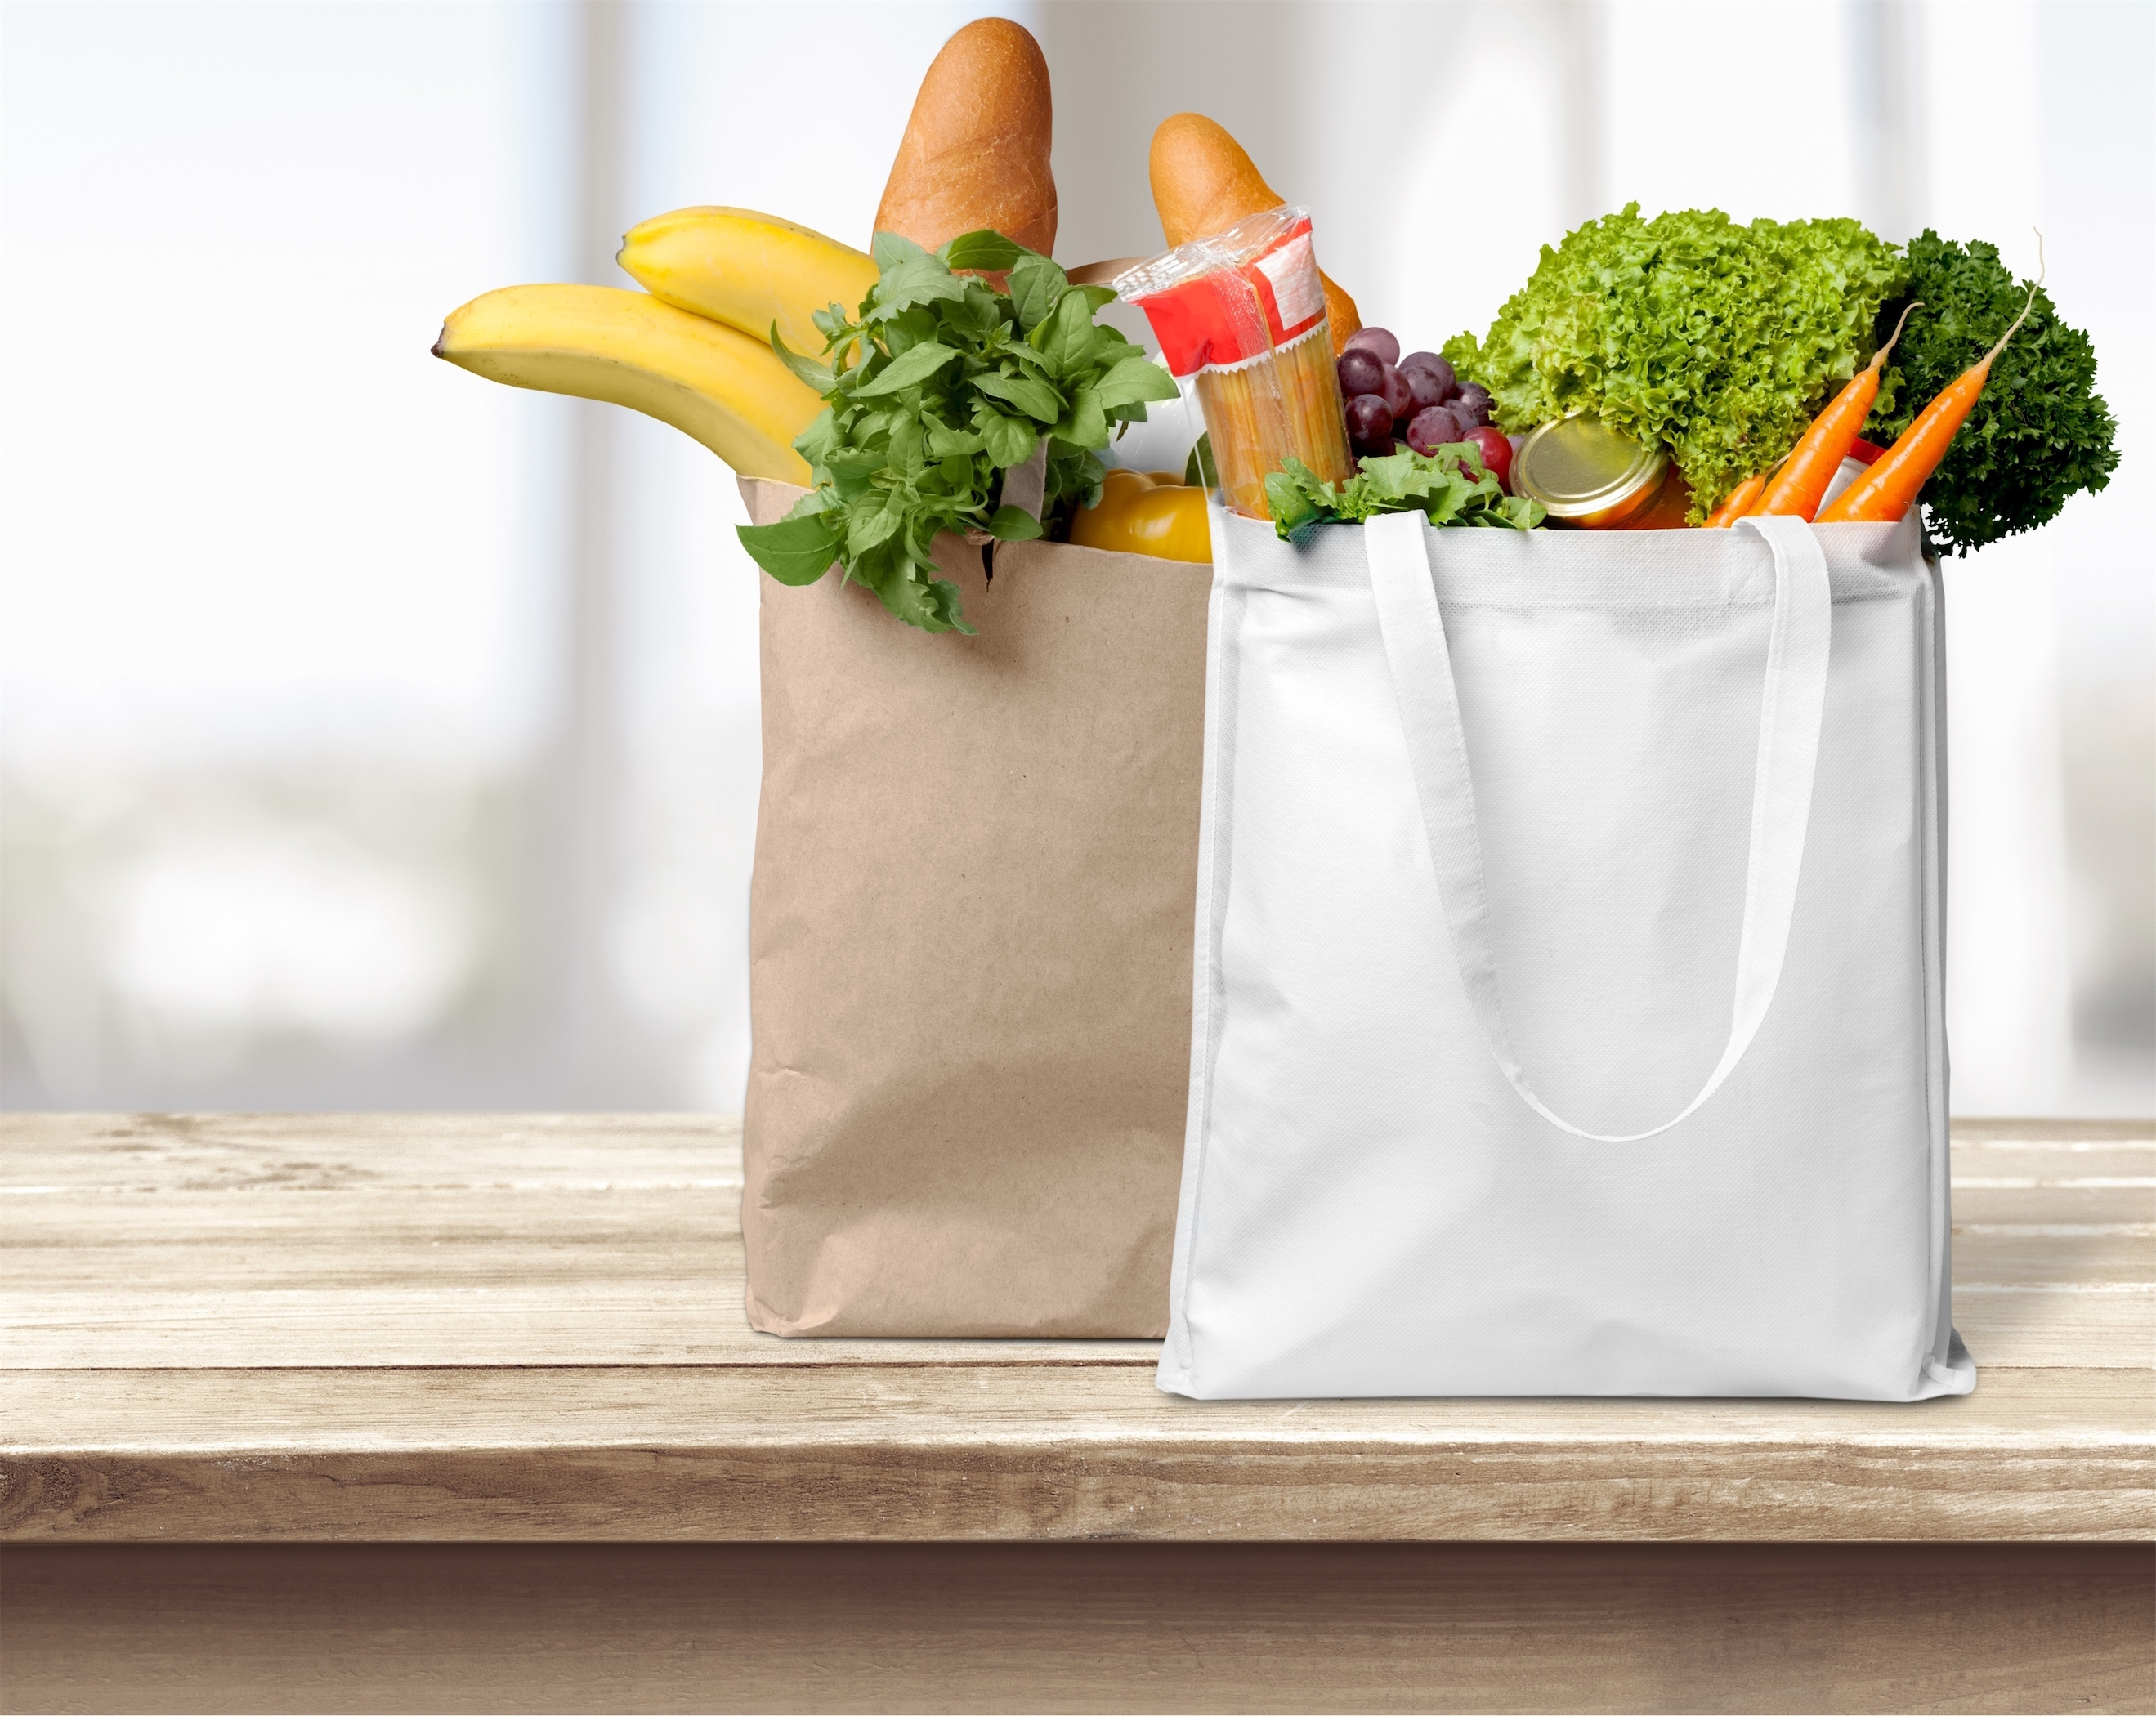 Reusable Grocery Bags Can Also Spread Bacteria From Raw Food Including Produce And Meat